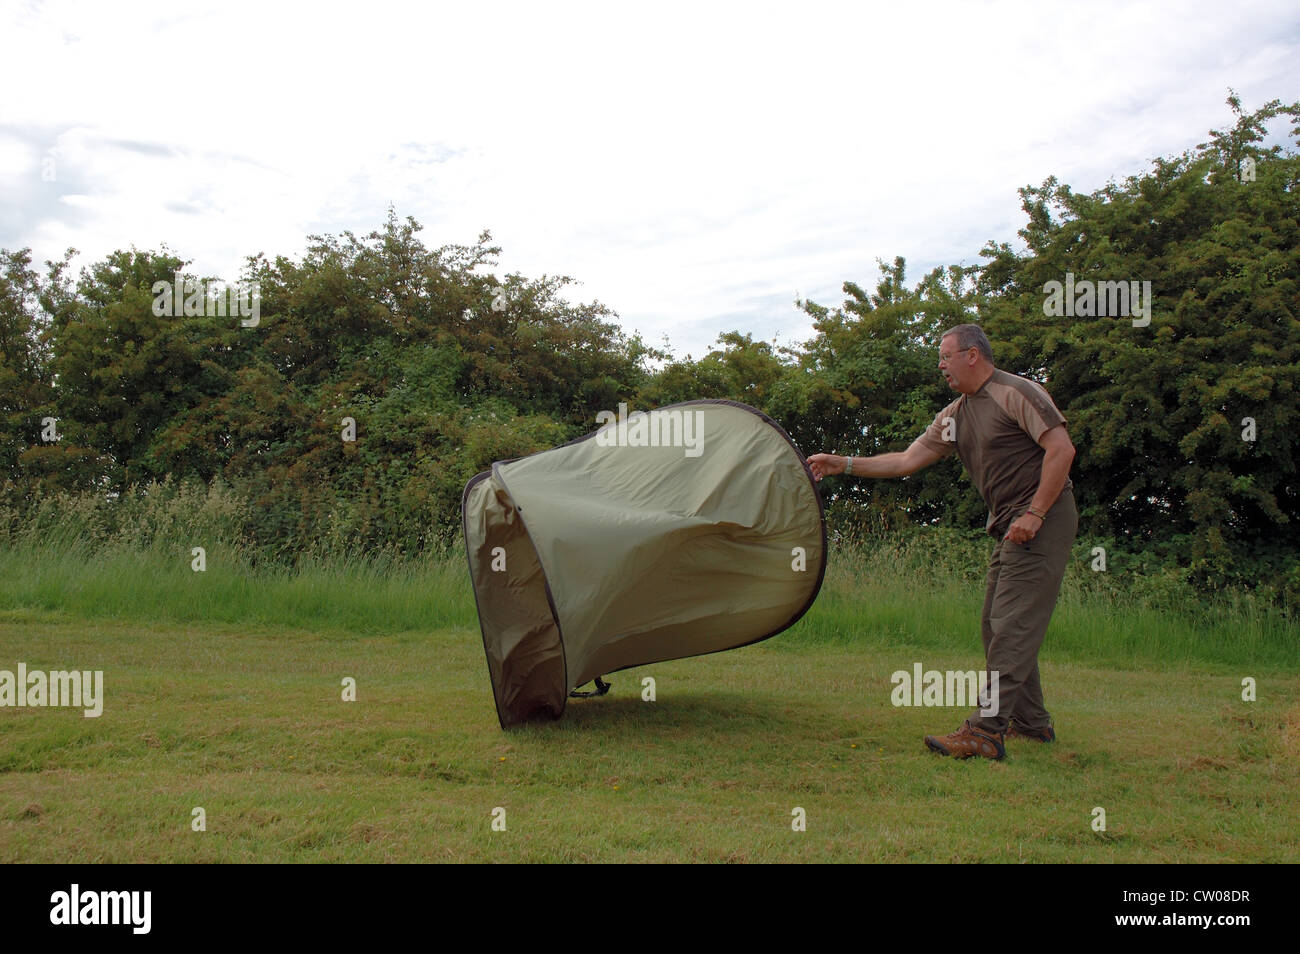 Alamy & Man throwing pop-up tent into the air - 4 of a series of 5 Stock ...